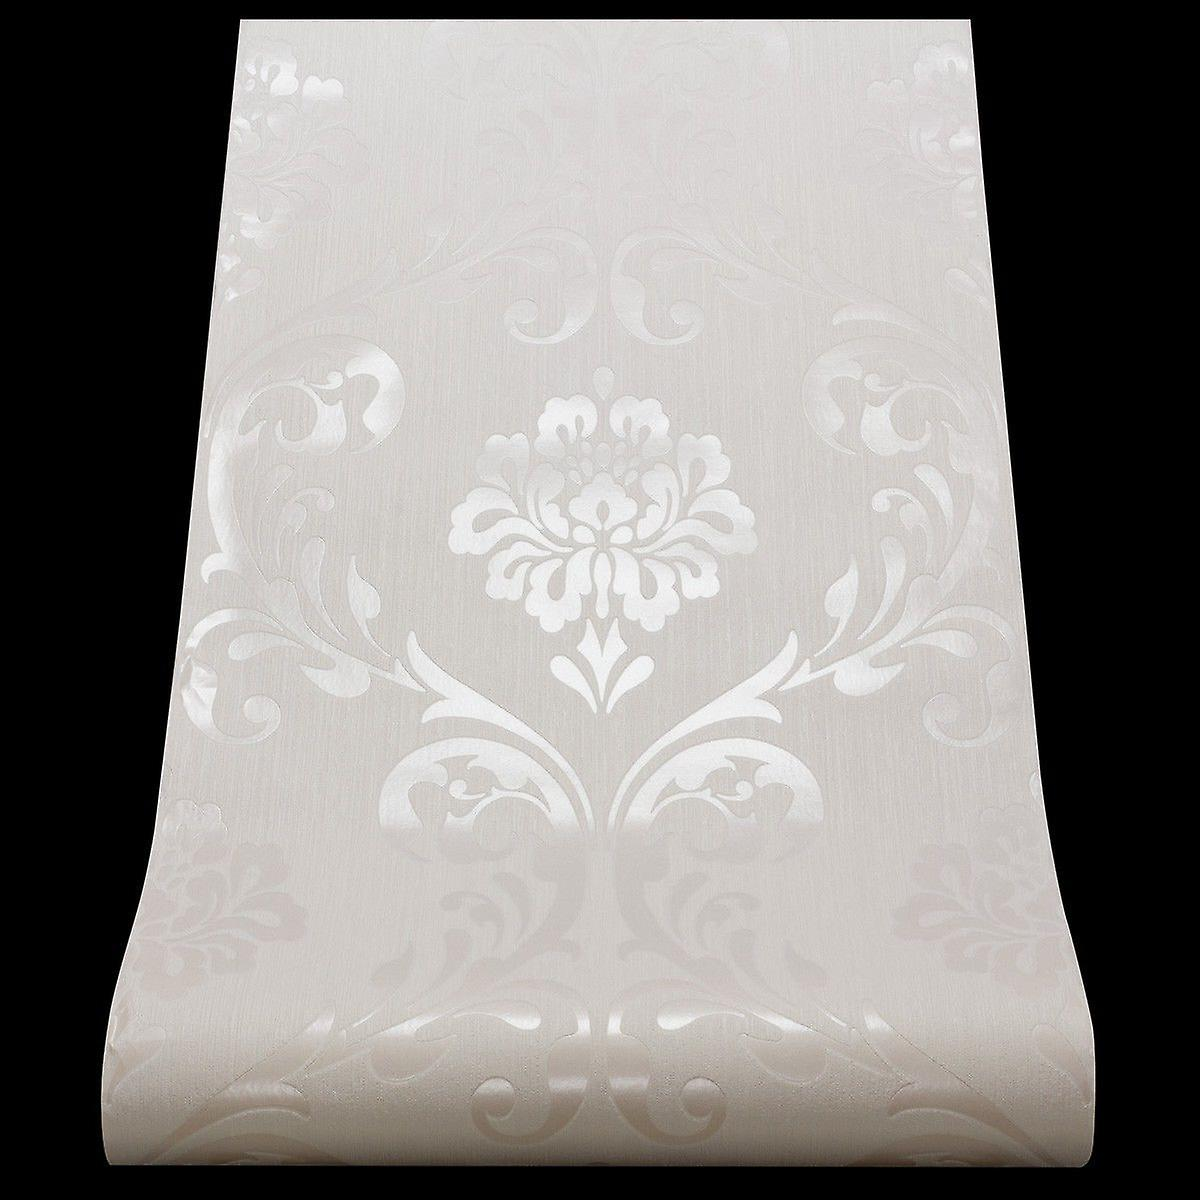 Damask Wallpaper Textured Vinyl Off White Shiny Silver Paste The Wall P+S